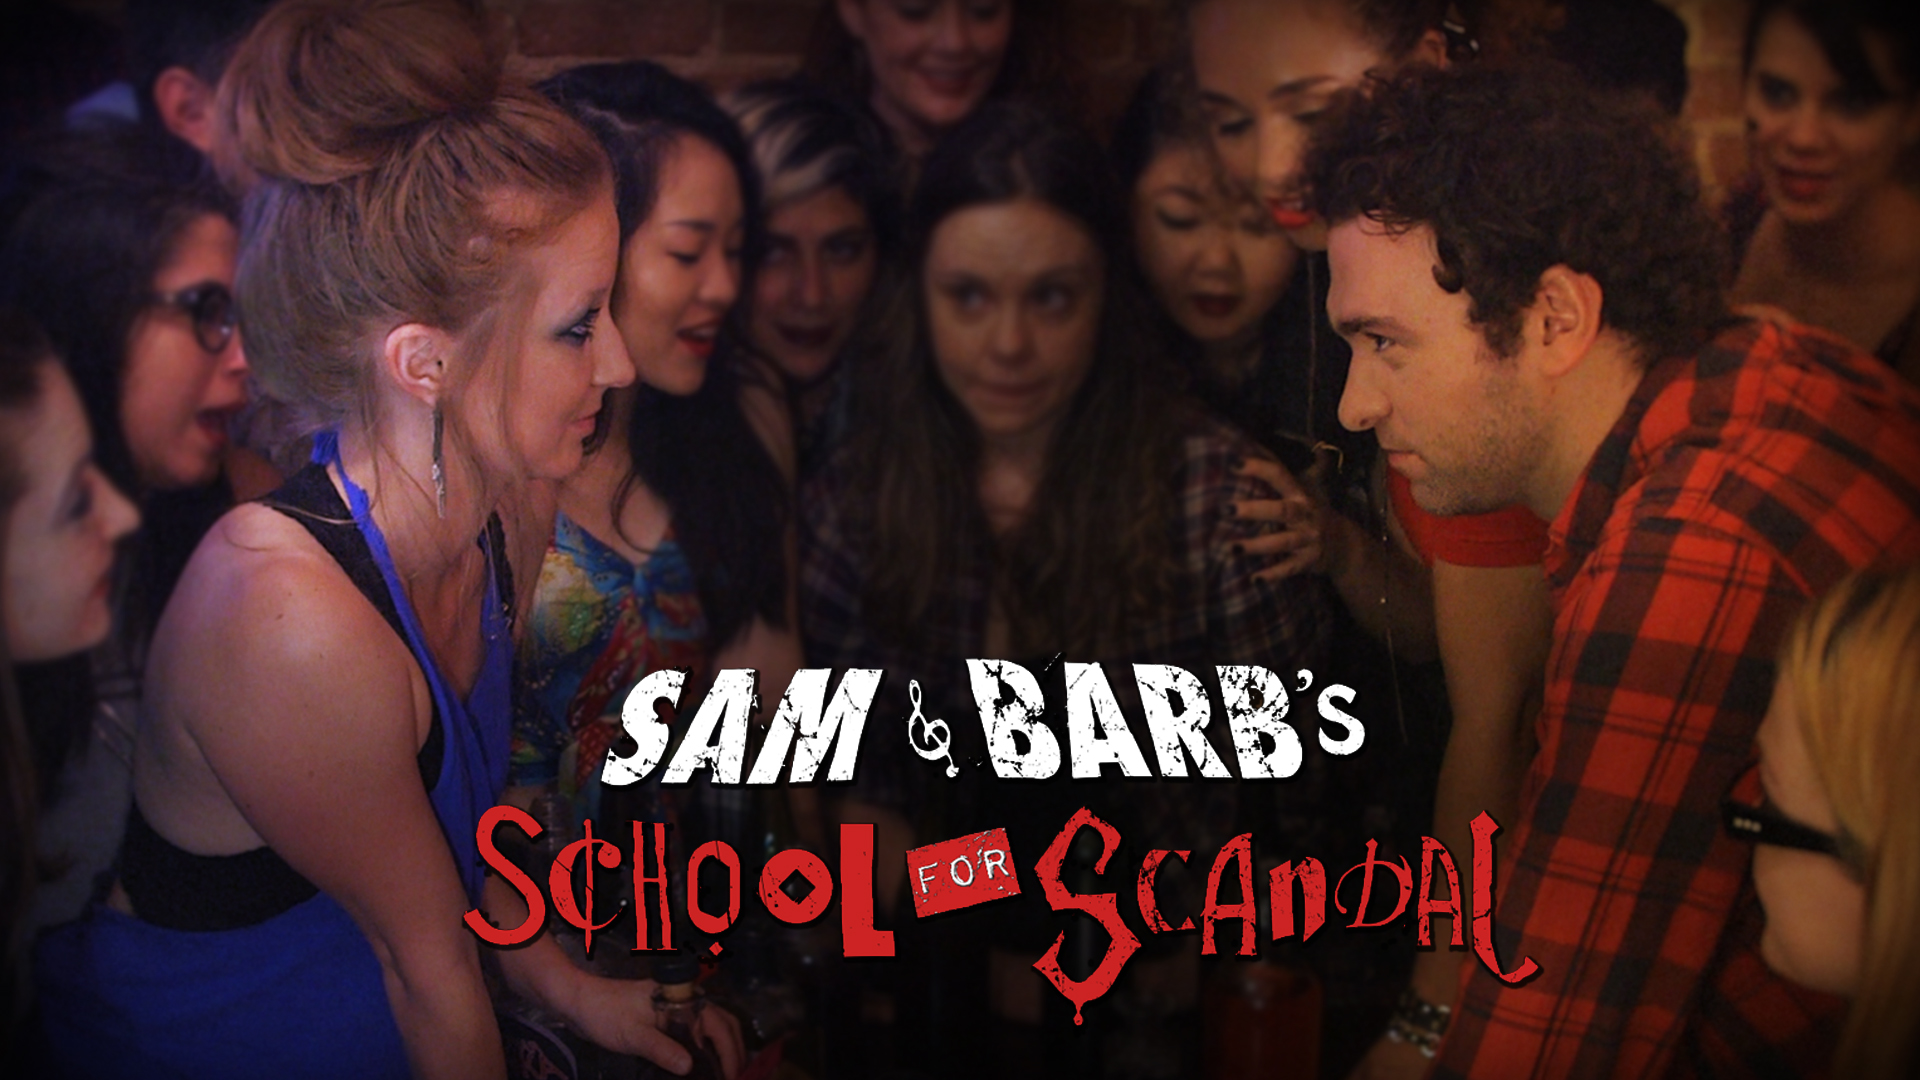 Sam & Barb's School for Scandal